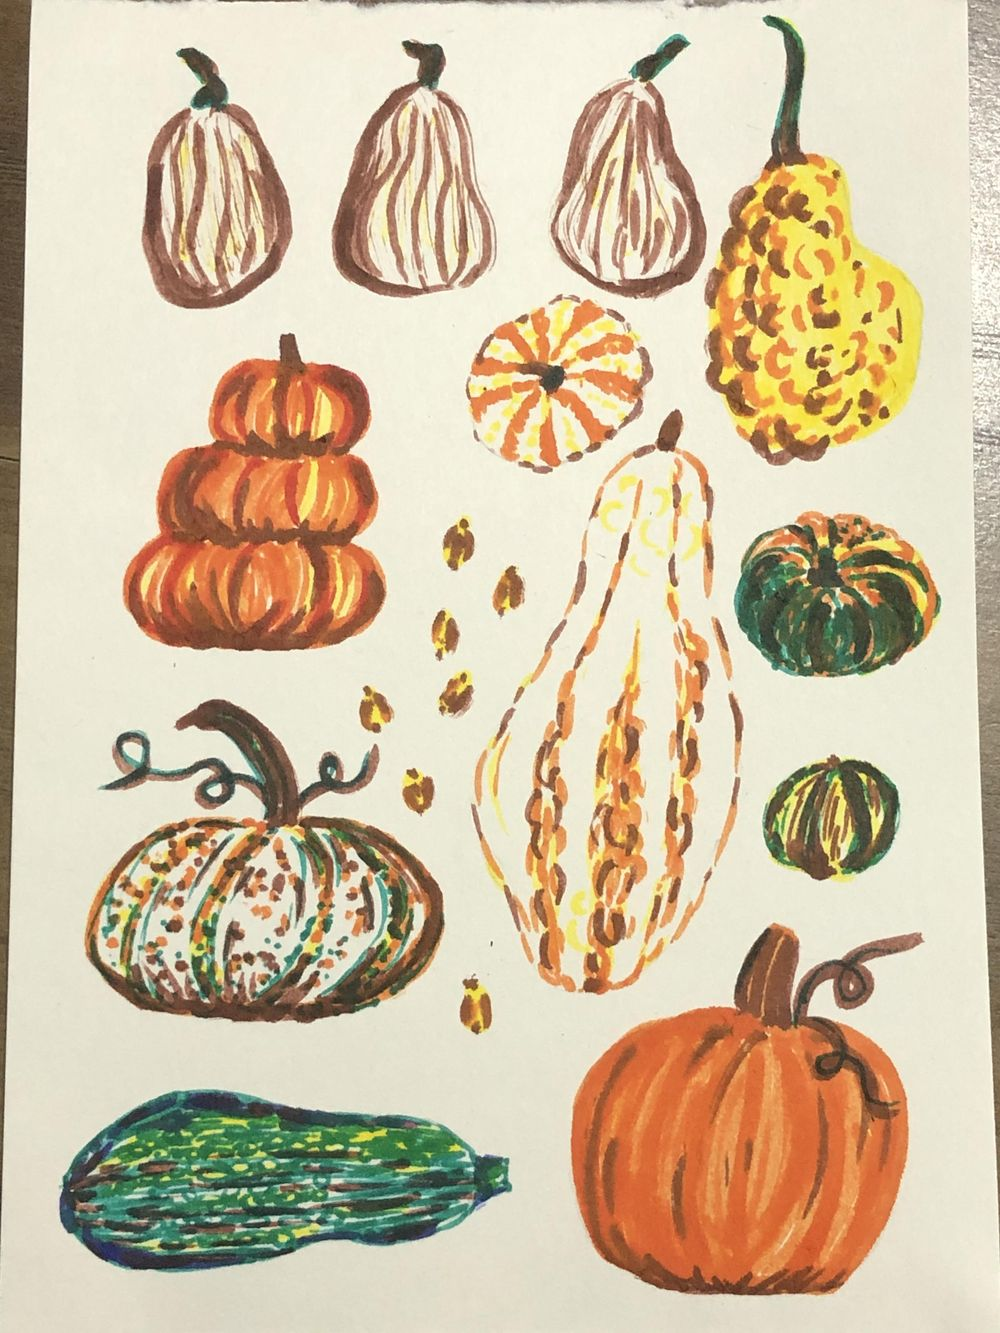 Pumpkins and gourds with markers - image 1 - student project